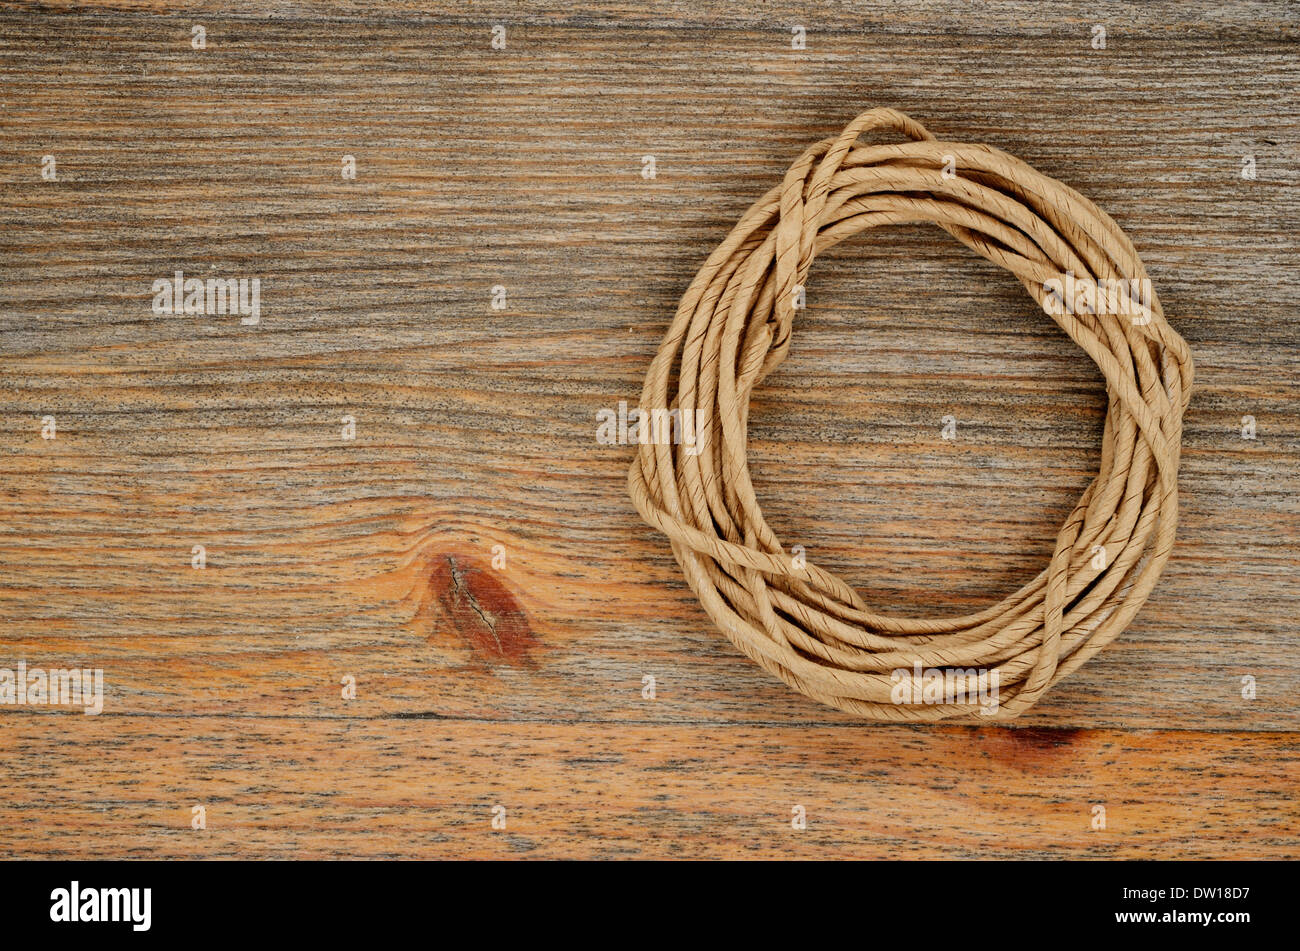 oval hank of packthread over wooden background - Stock Image